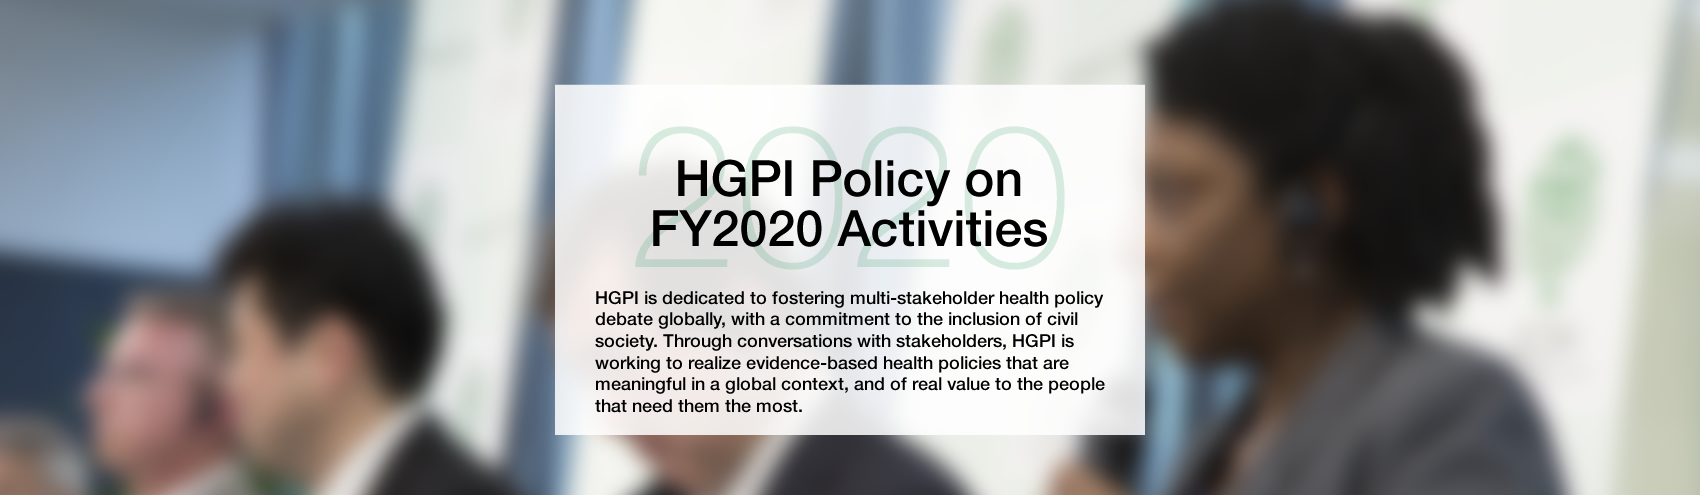 HGPI Policy on FY2020 Activities